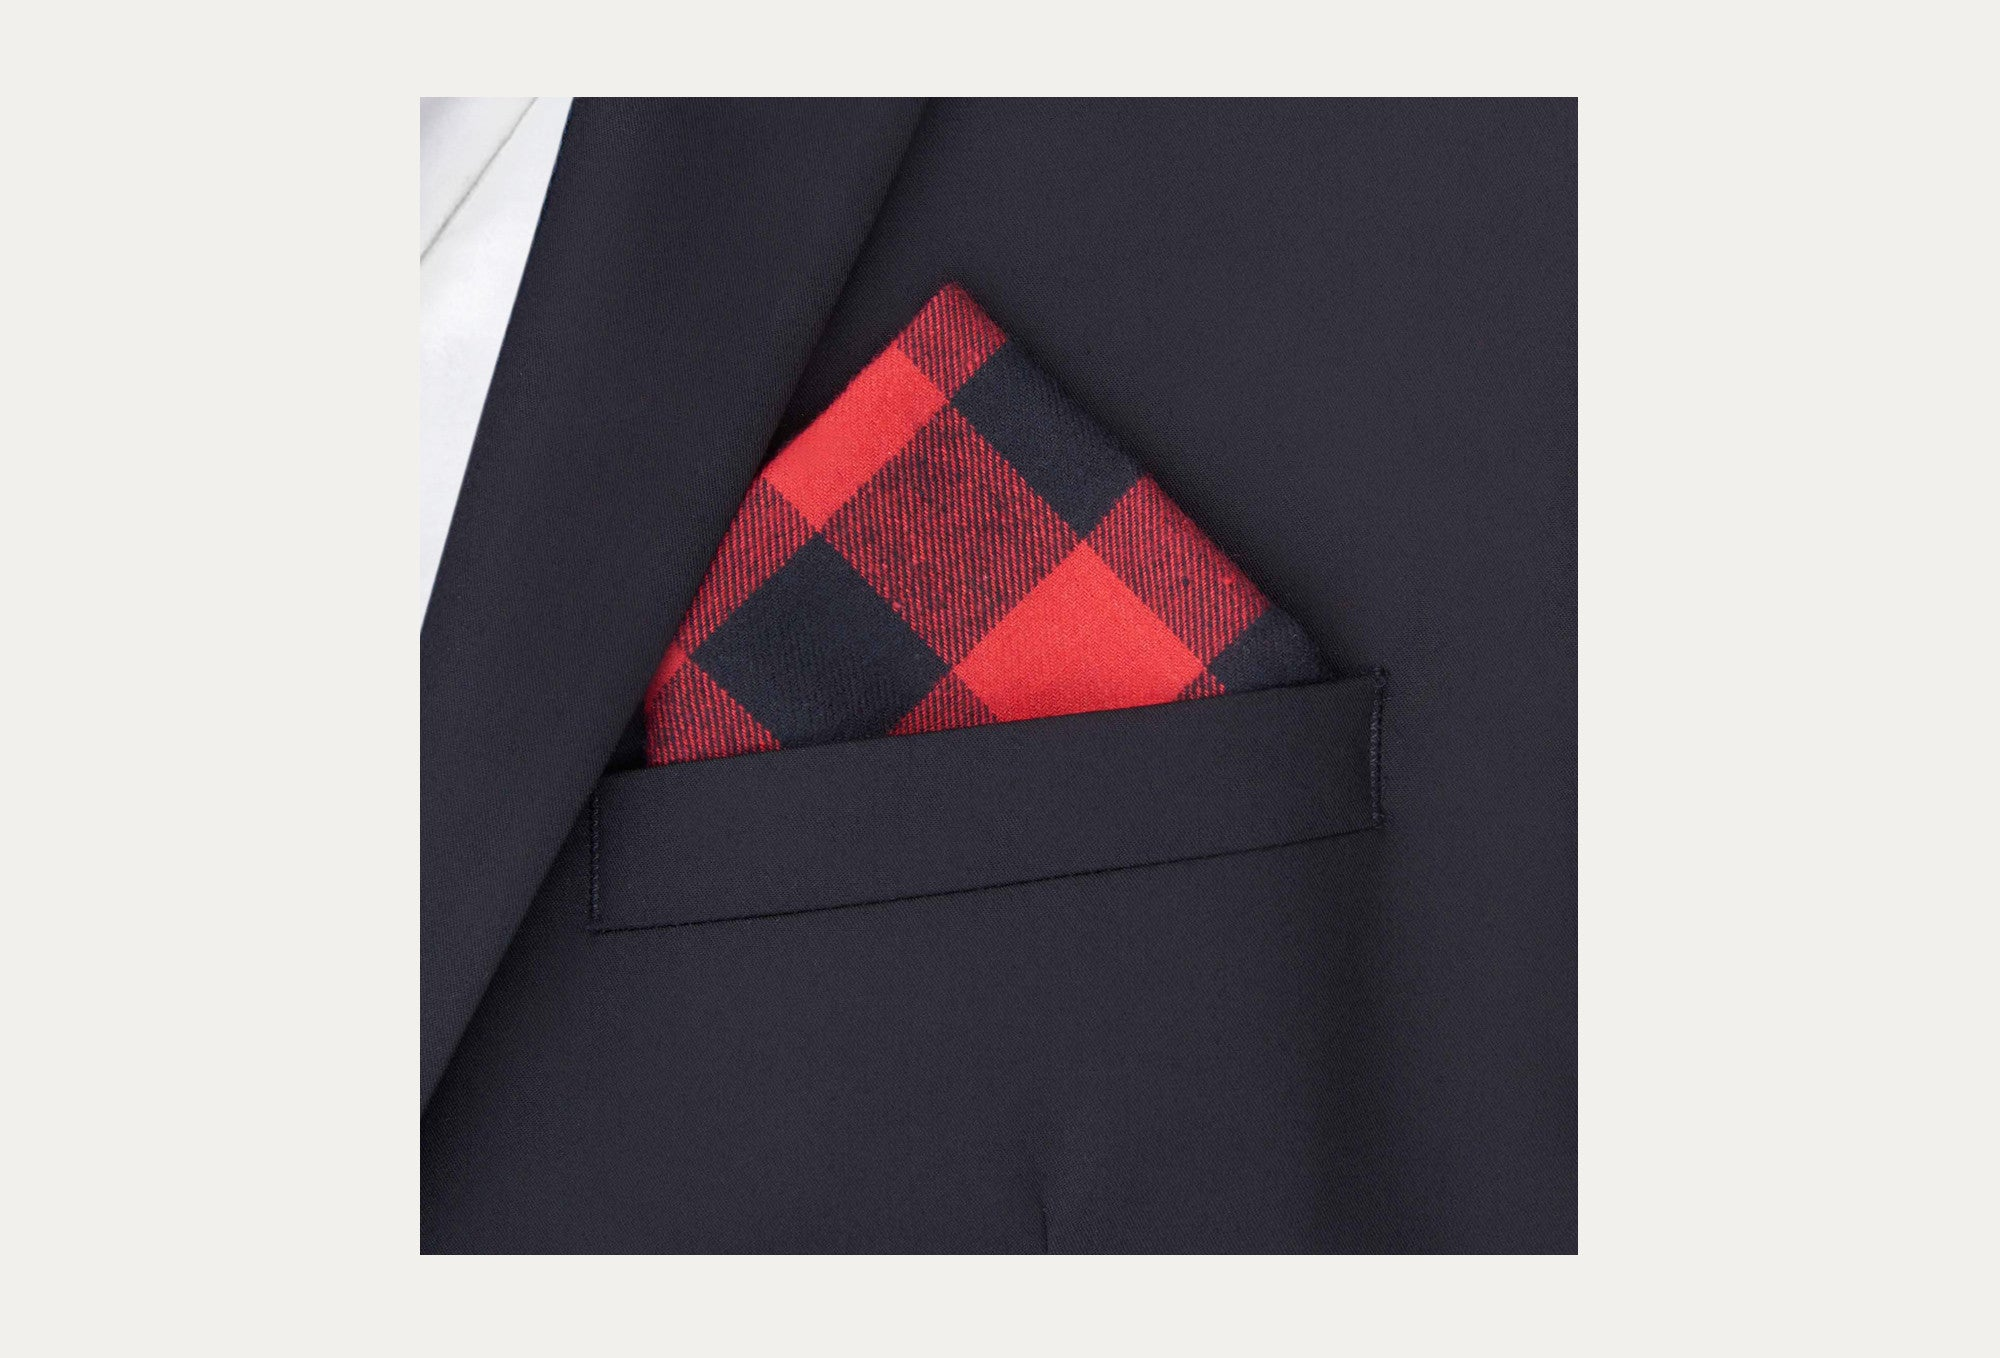 Billiards Pocket Square